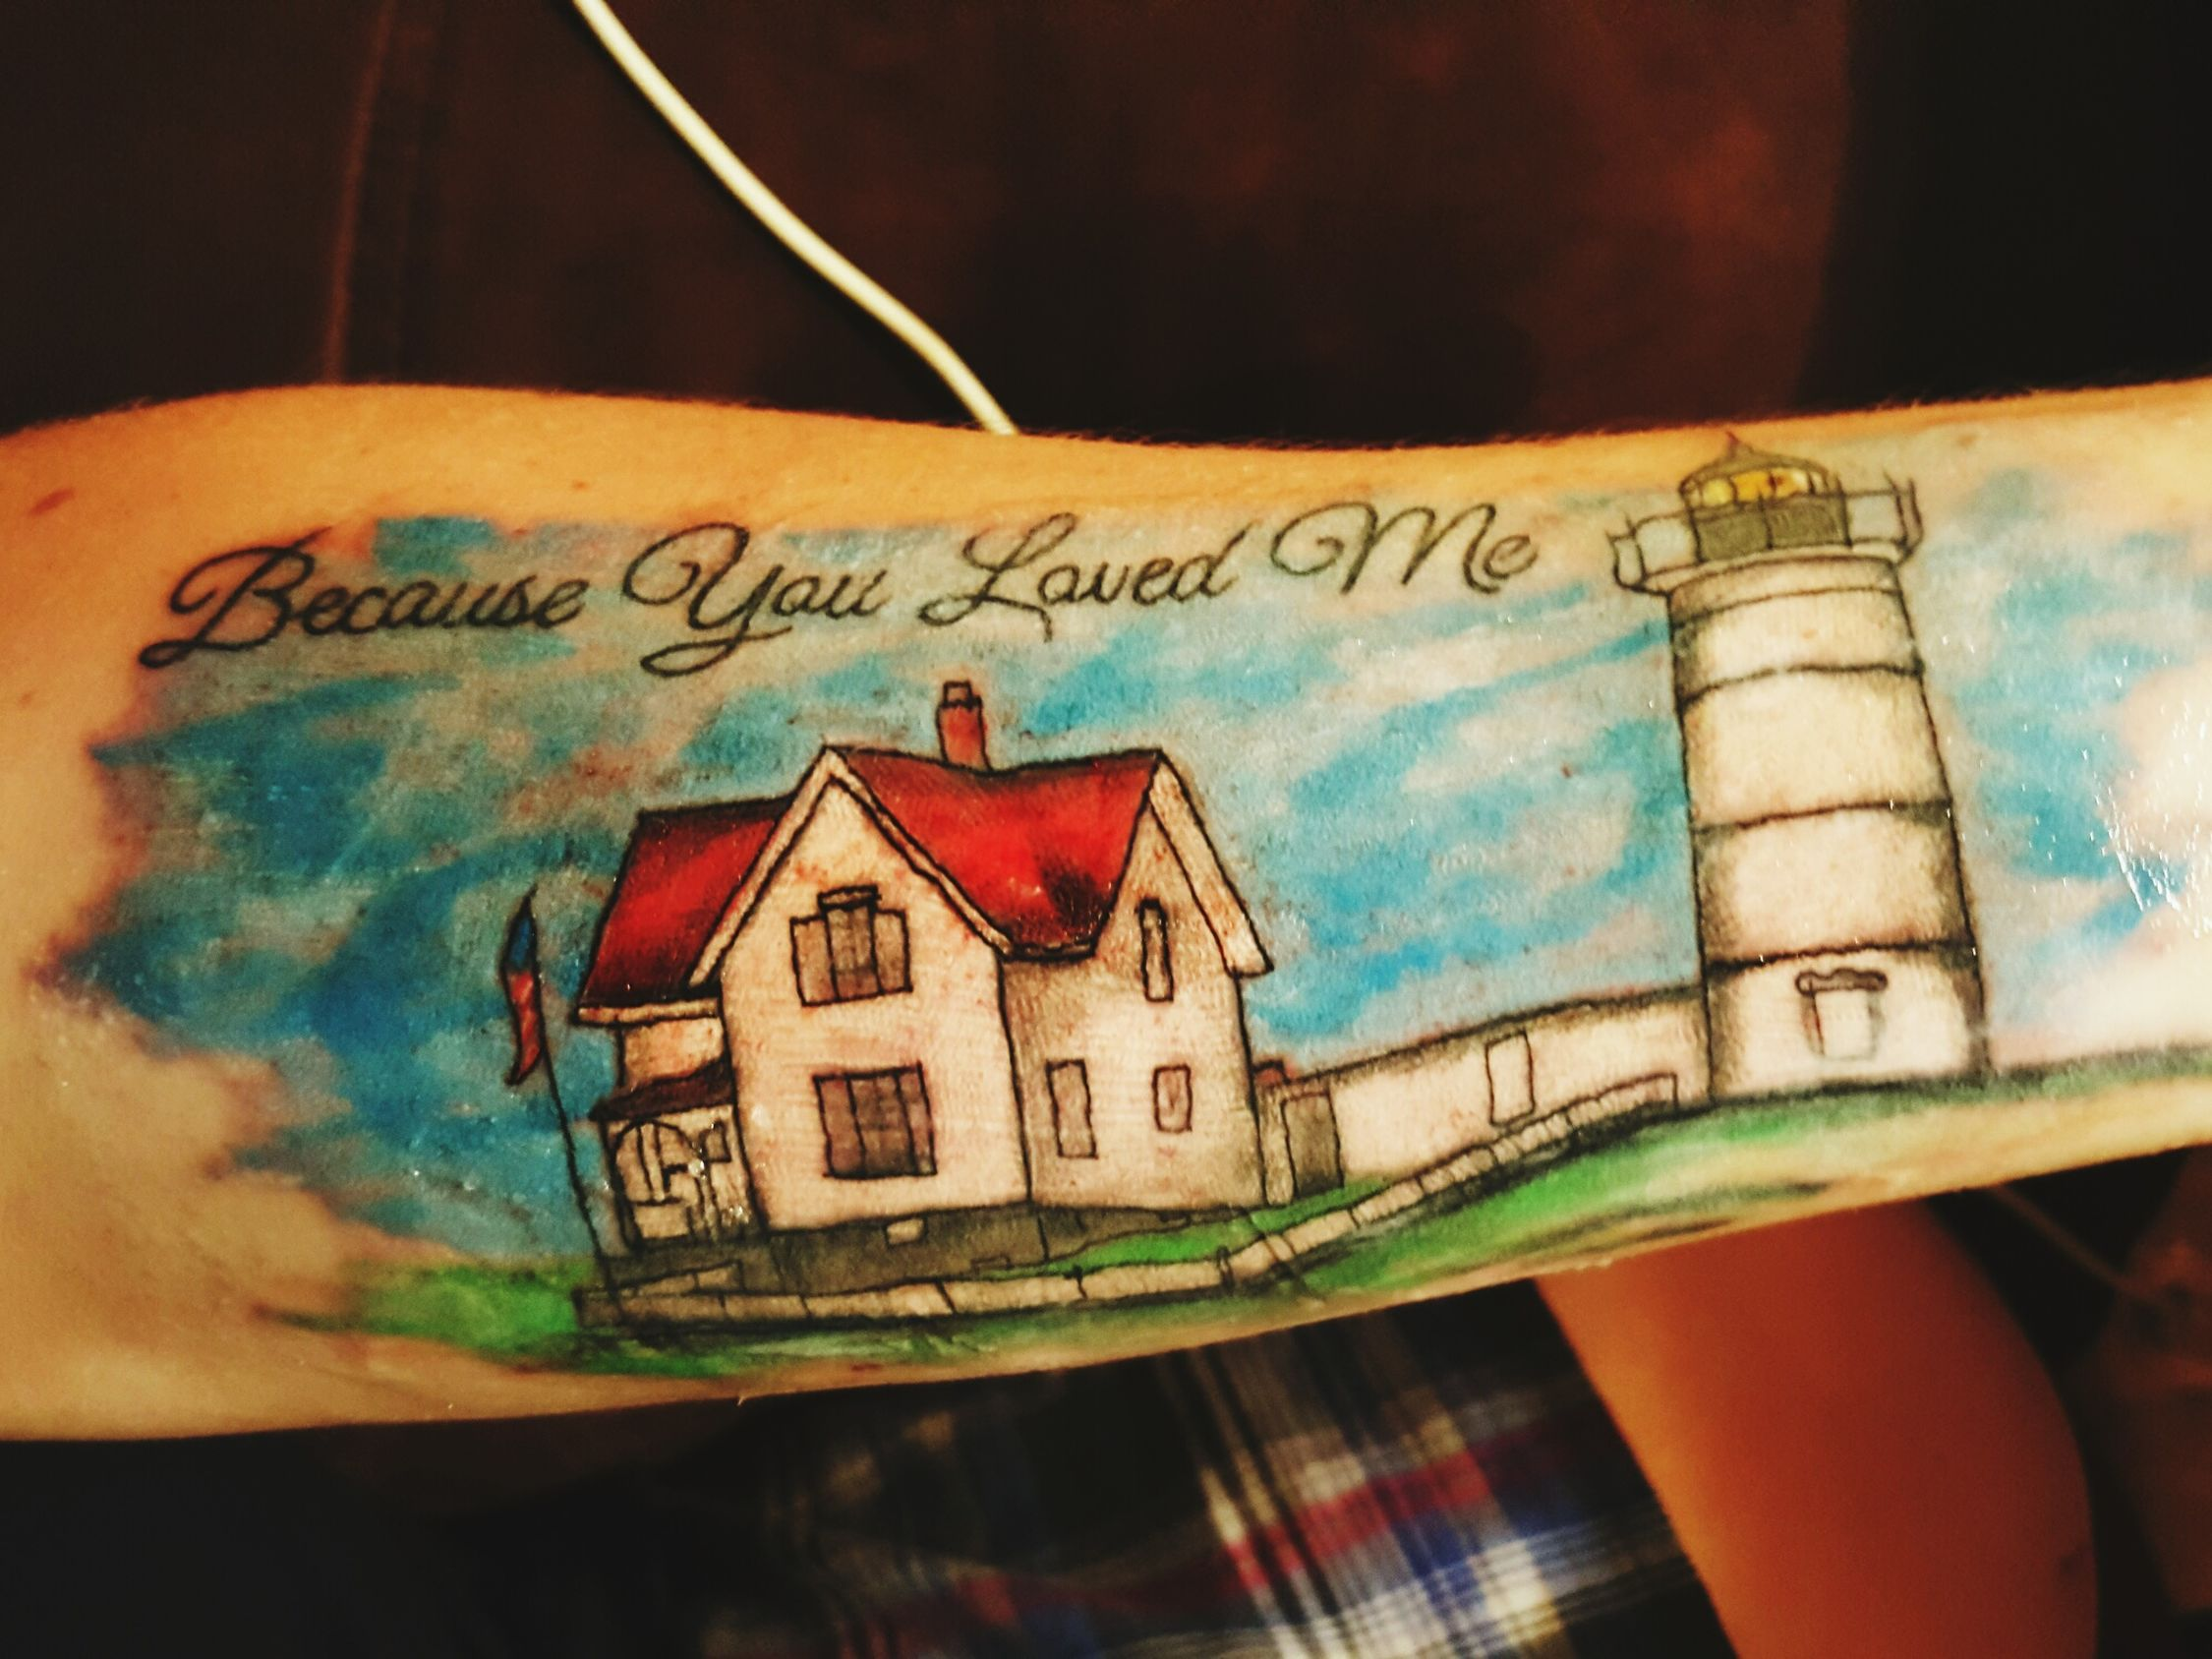 Tattoos Memorial Because You Loved Me Nubble Lighthouse Moms